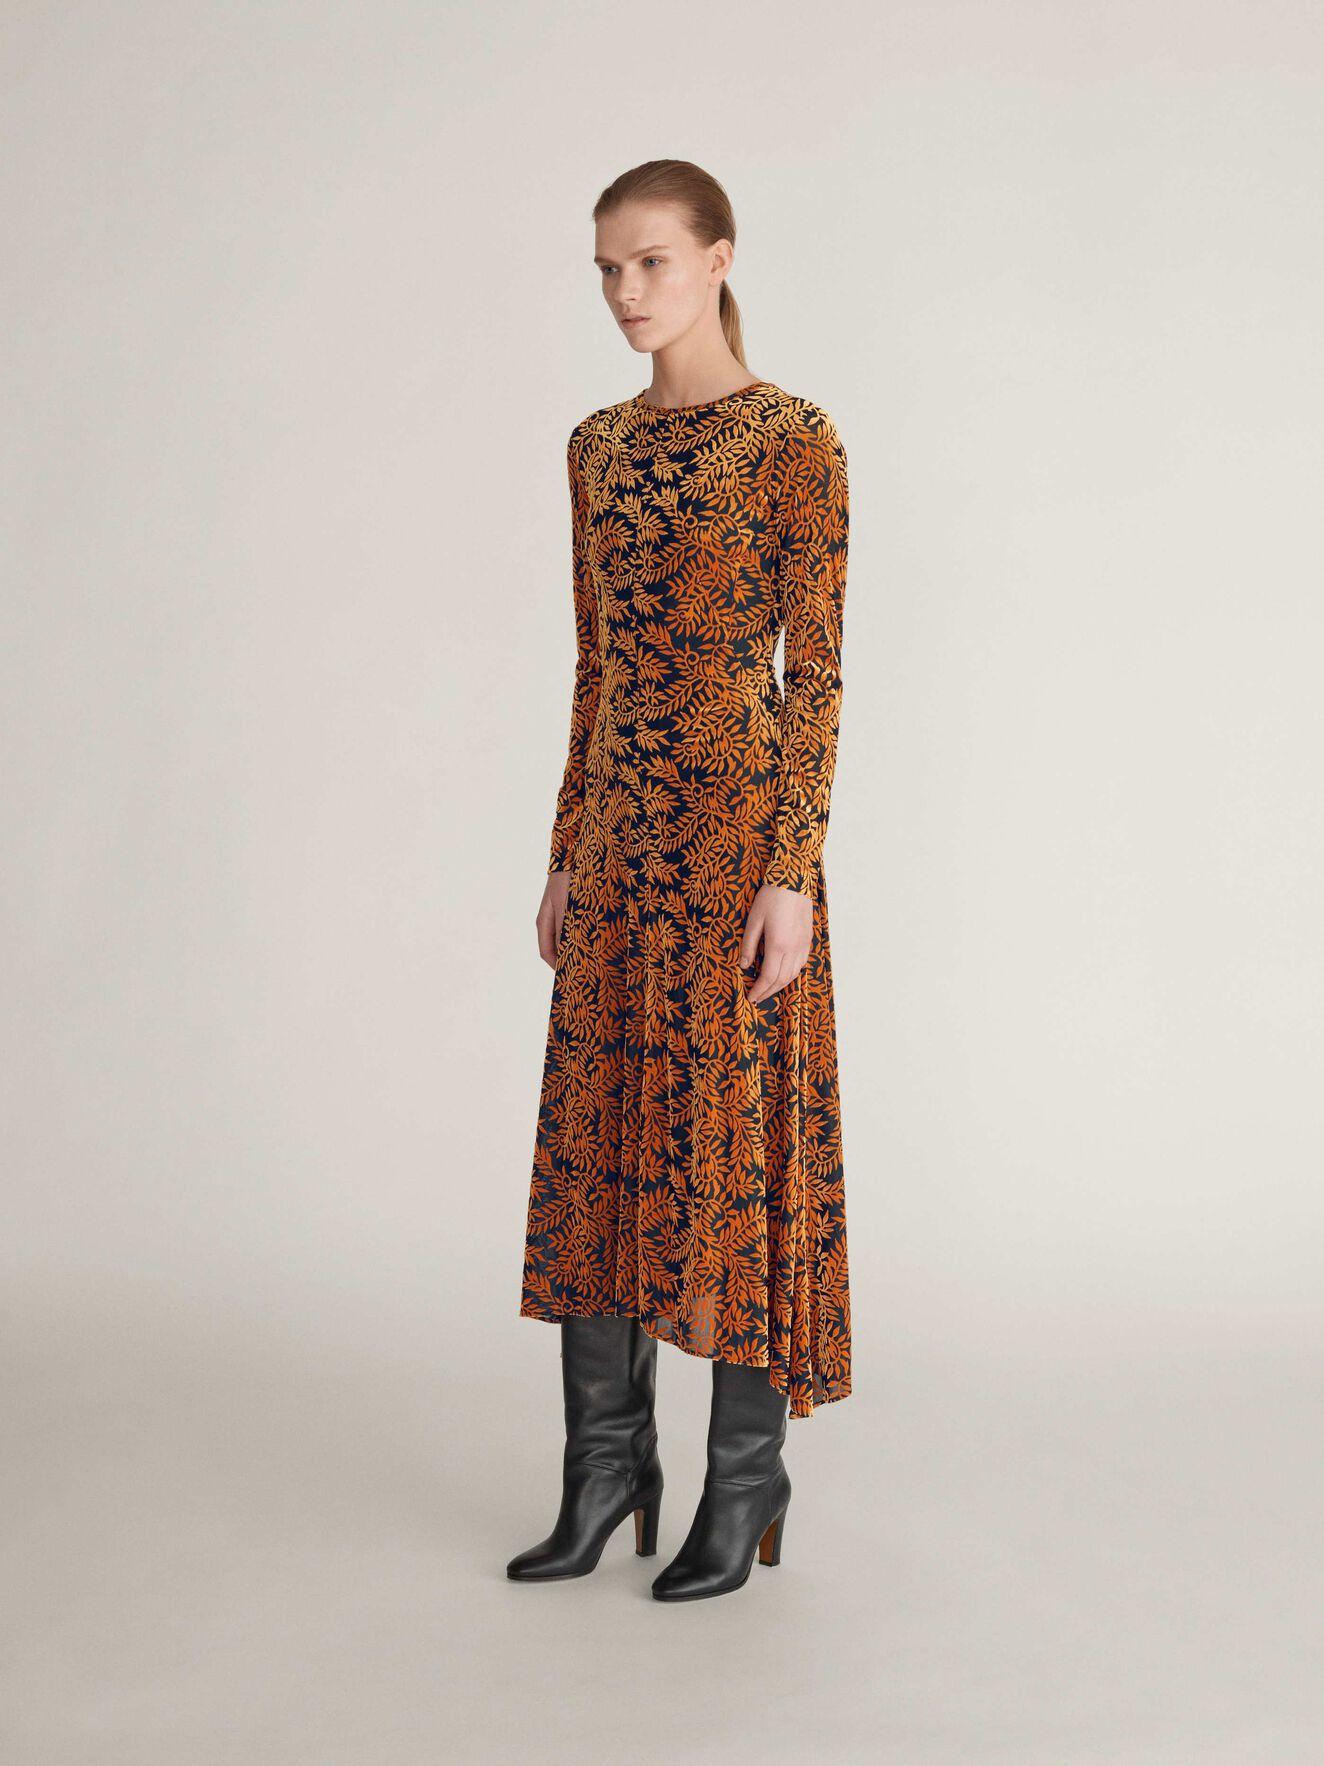 Pennylane Dress in ARTWORK from Tiger of Sweden